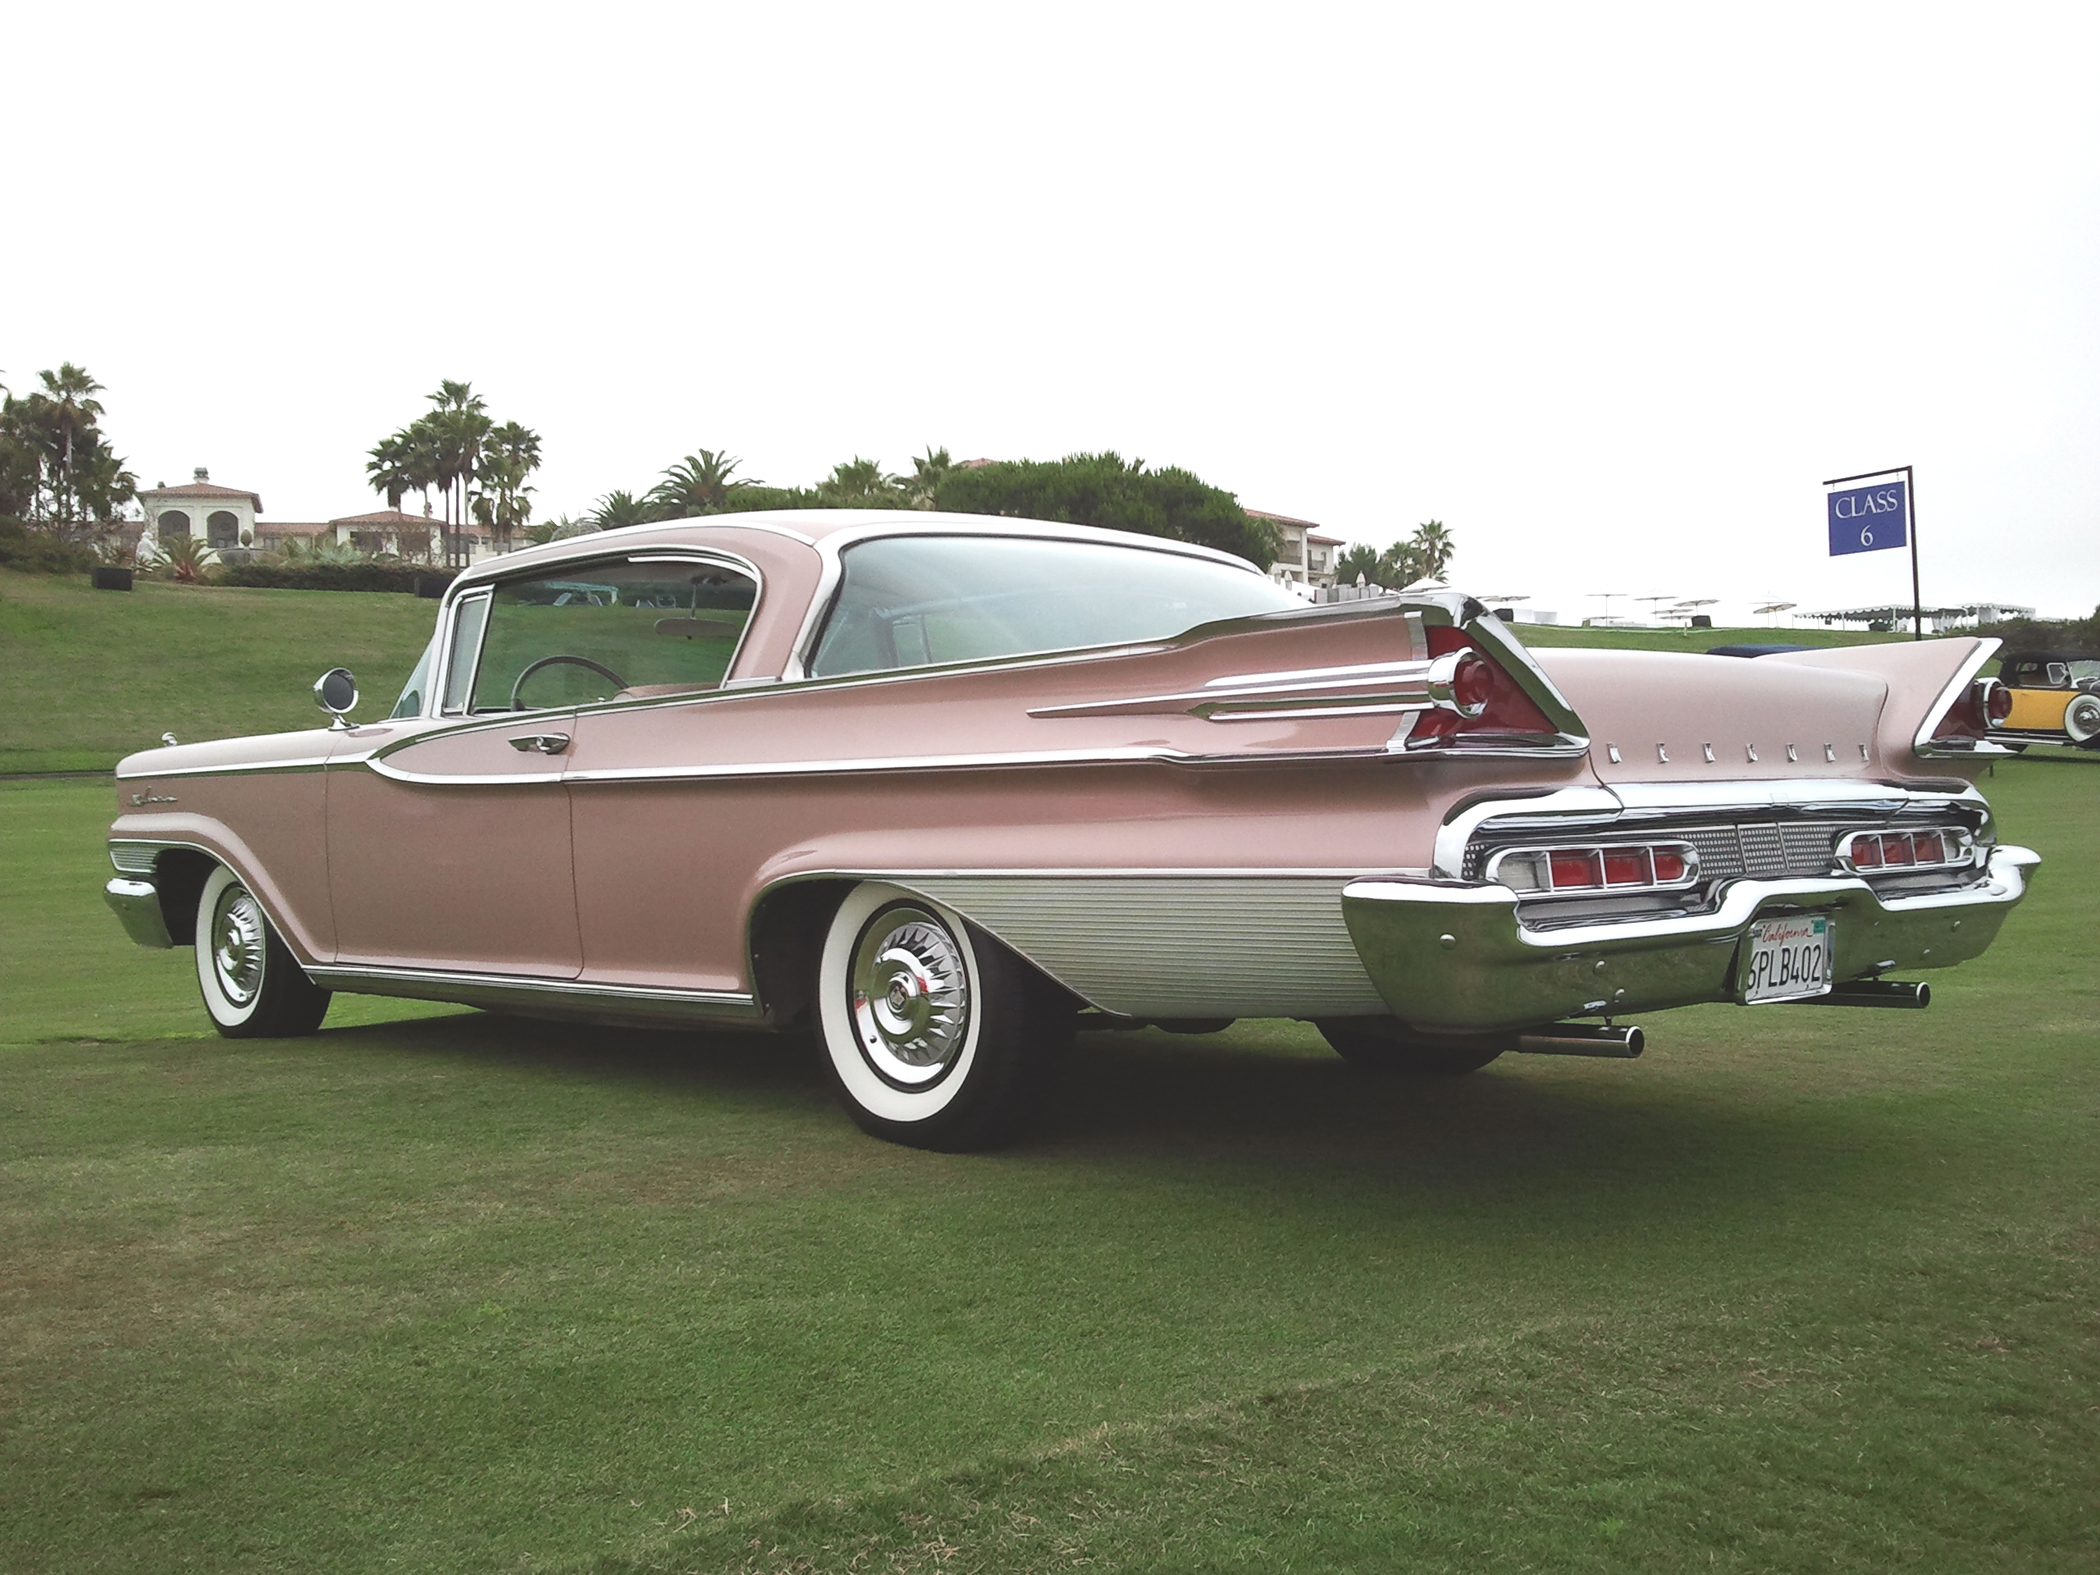 1959 mercury park lane is hollywood glamorous classic for Garage ford 59